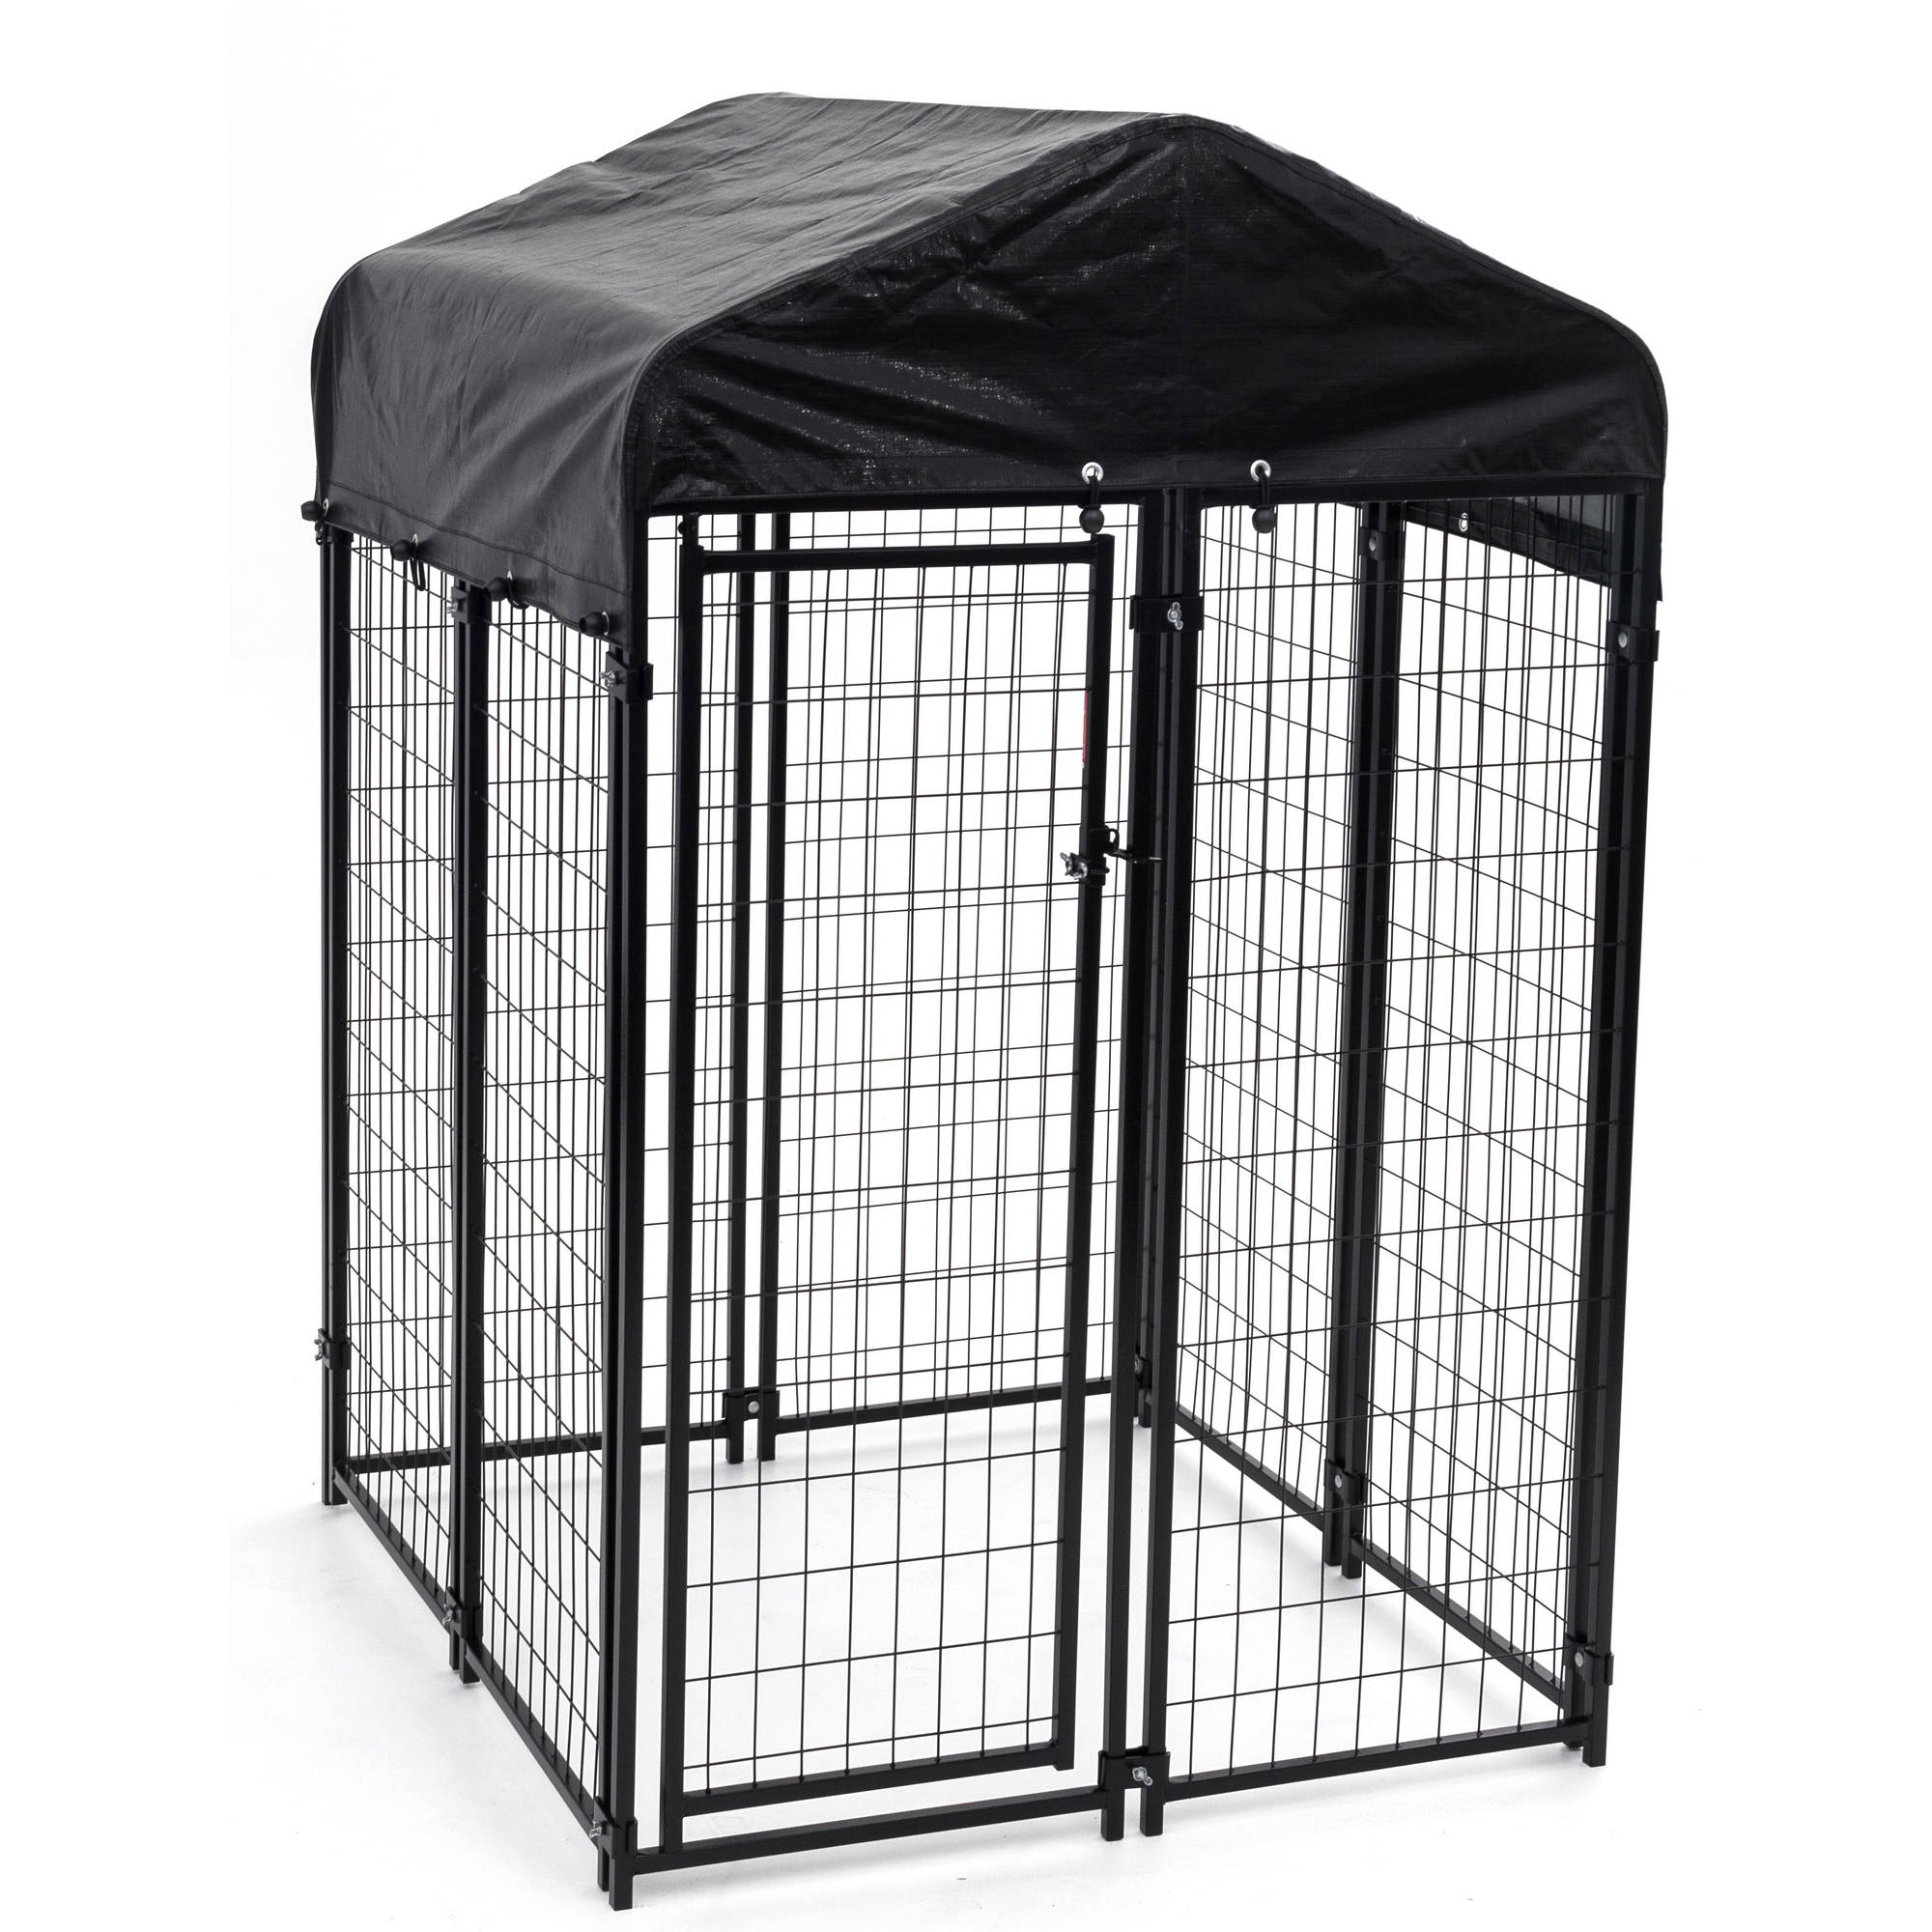 Lucky Dog Welded Wire Uptown Dog Kennel, 6'x 4' x4'